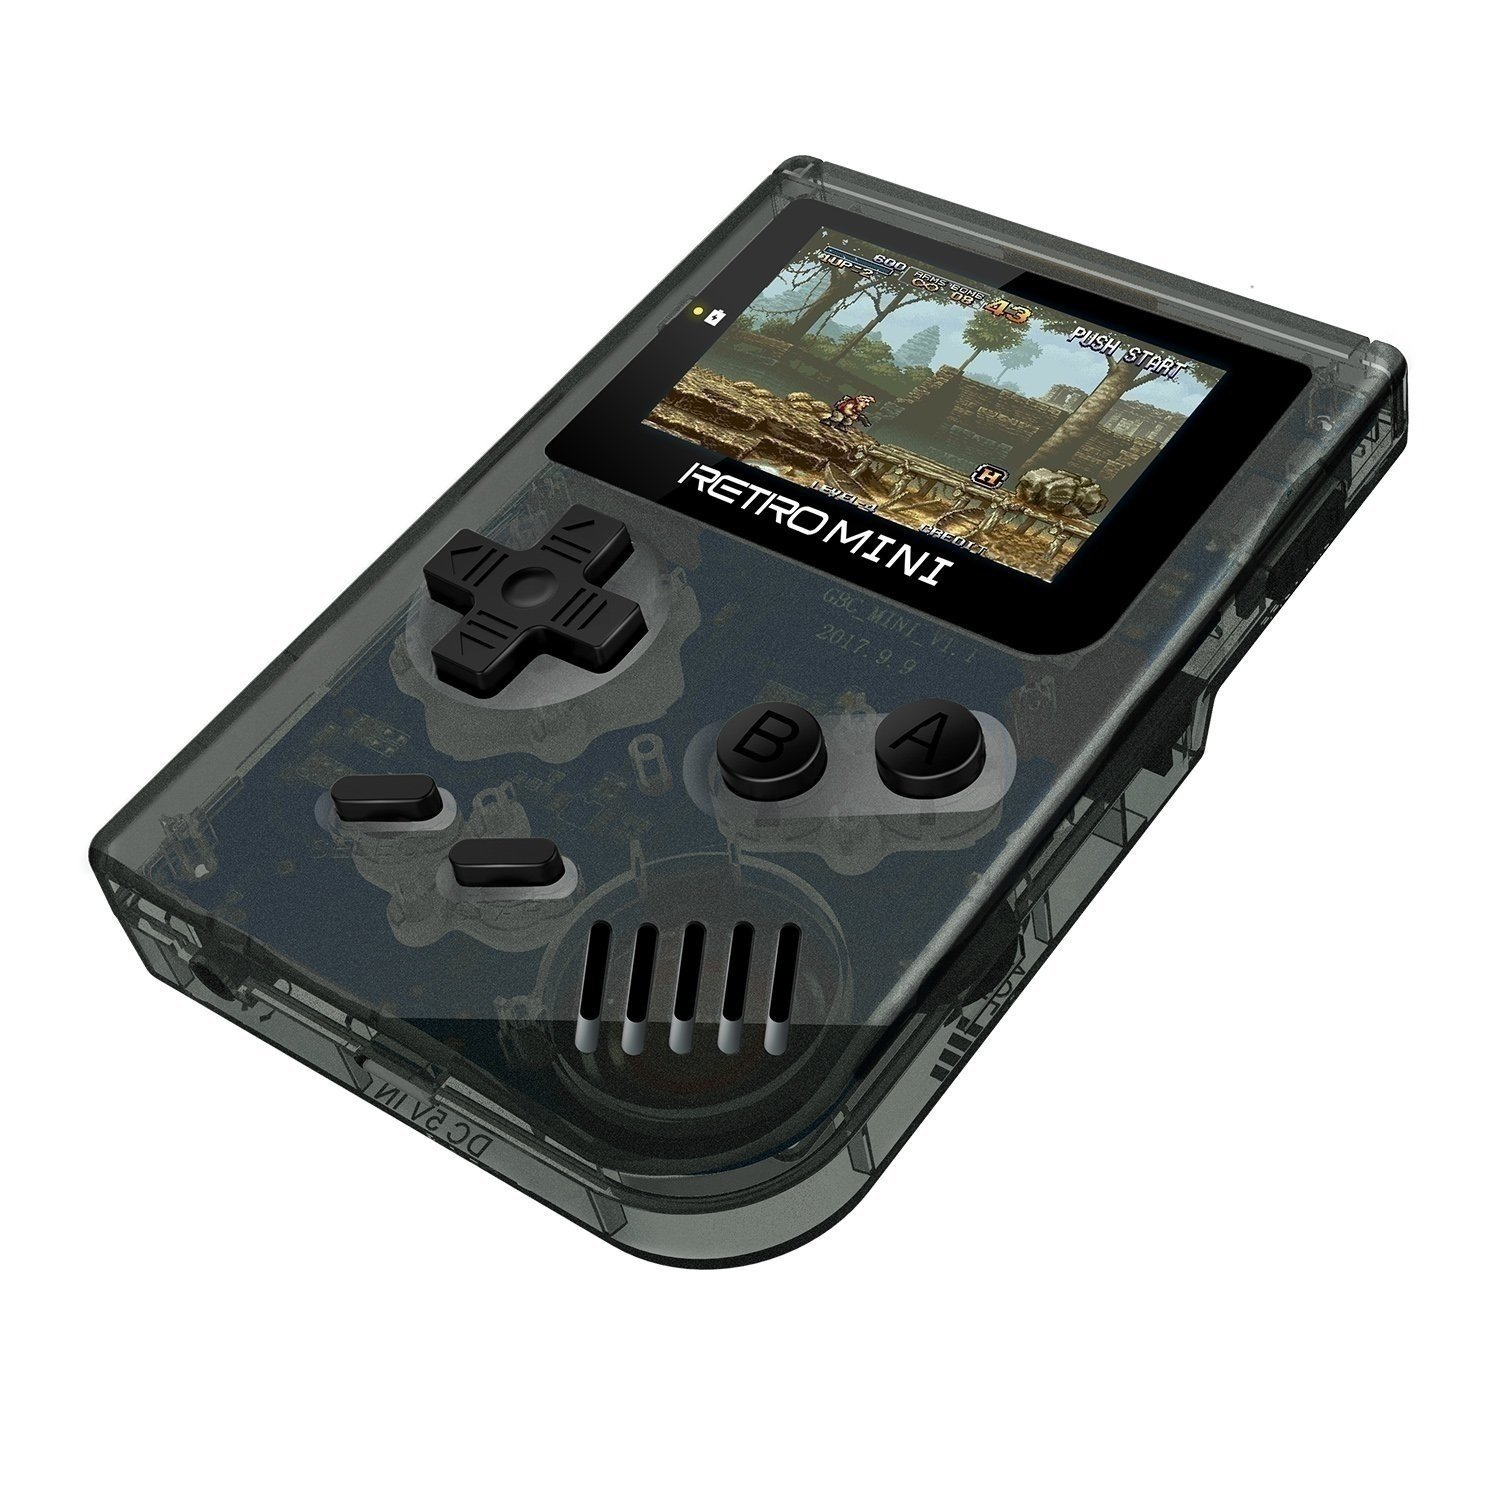 SODIAL Retro Game Console 32 Bit Portable Mini Handheld Game Players Built-in 940 for GBA Classic Games Best Gift for Kids Black by SODIAL (Image #1)